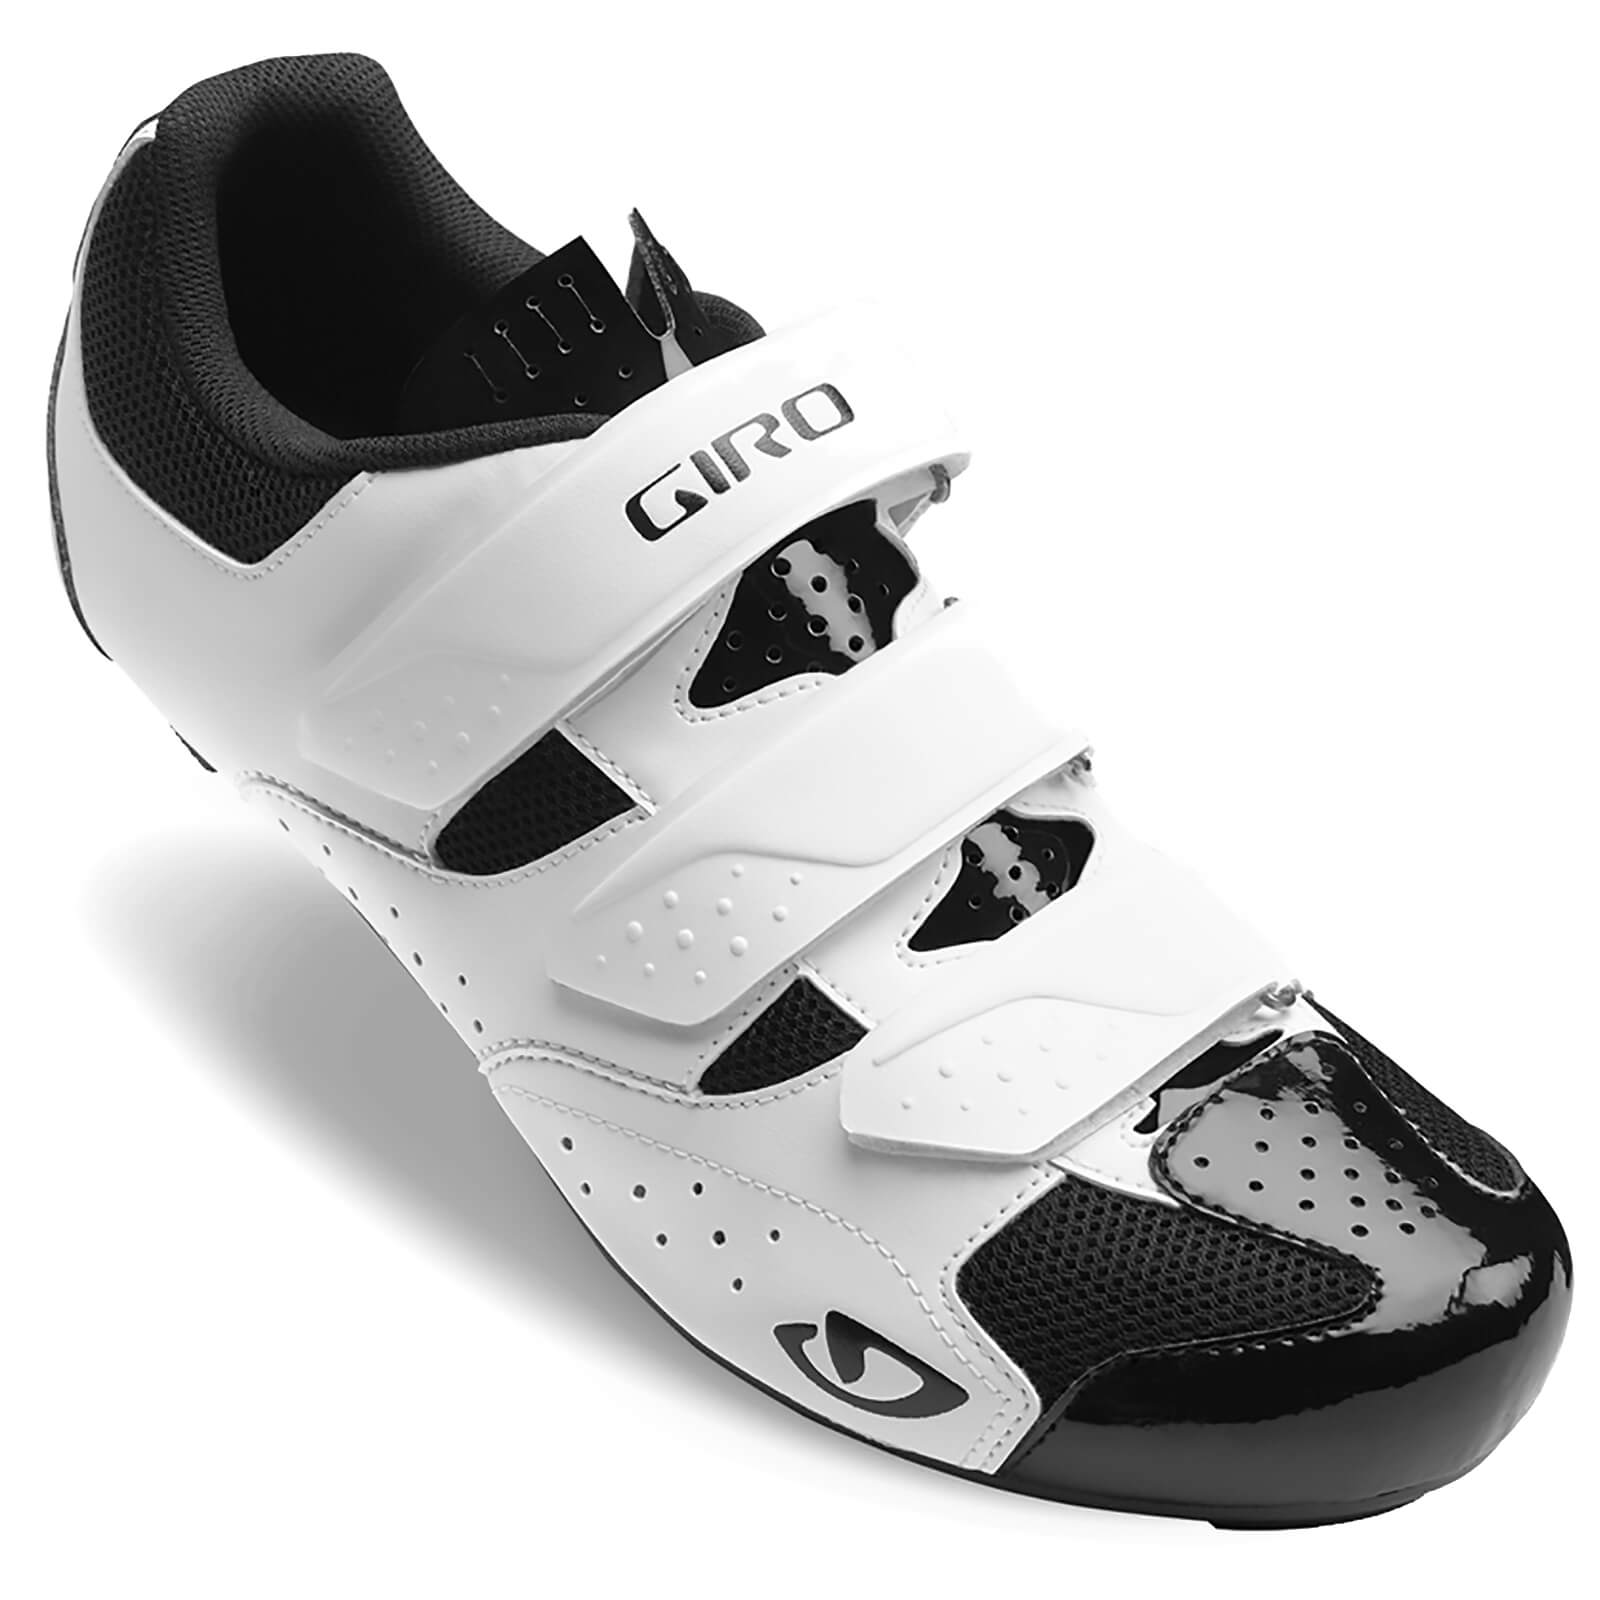 Giro Techne Road Cycling Shoes - White/Black